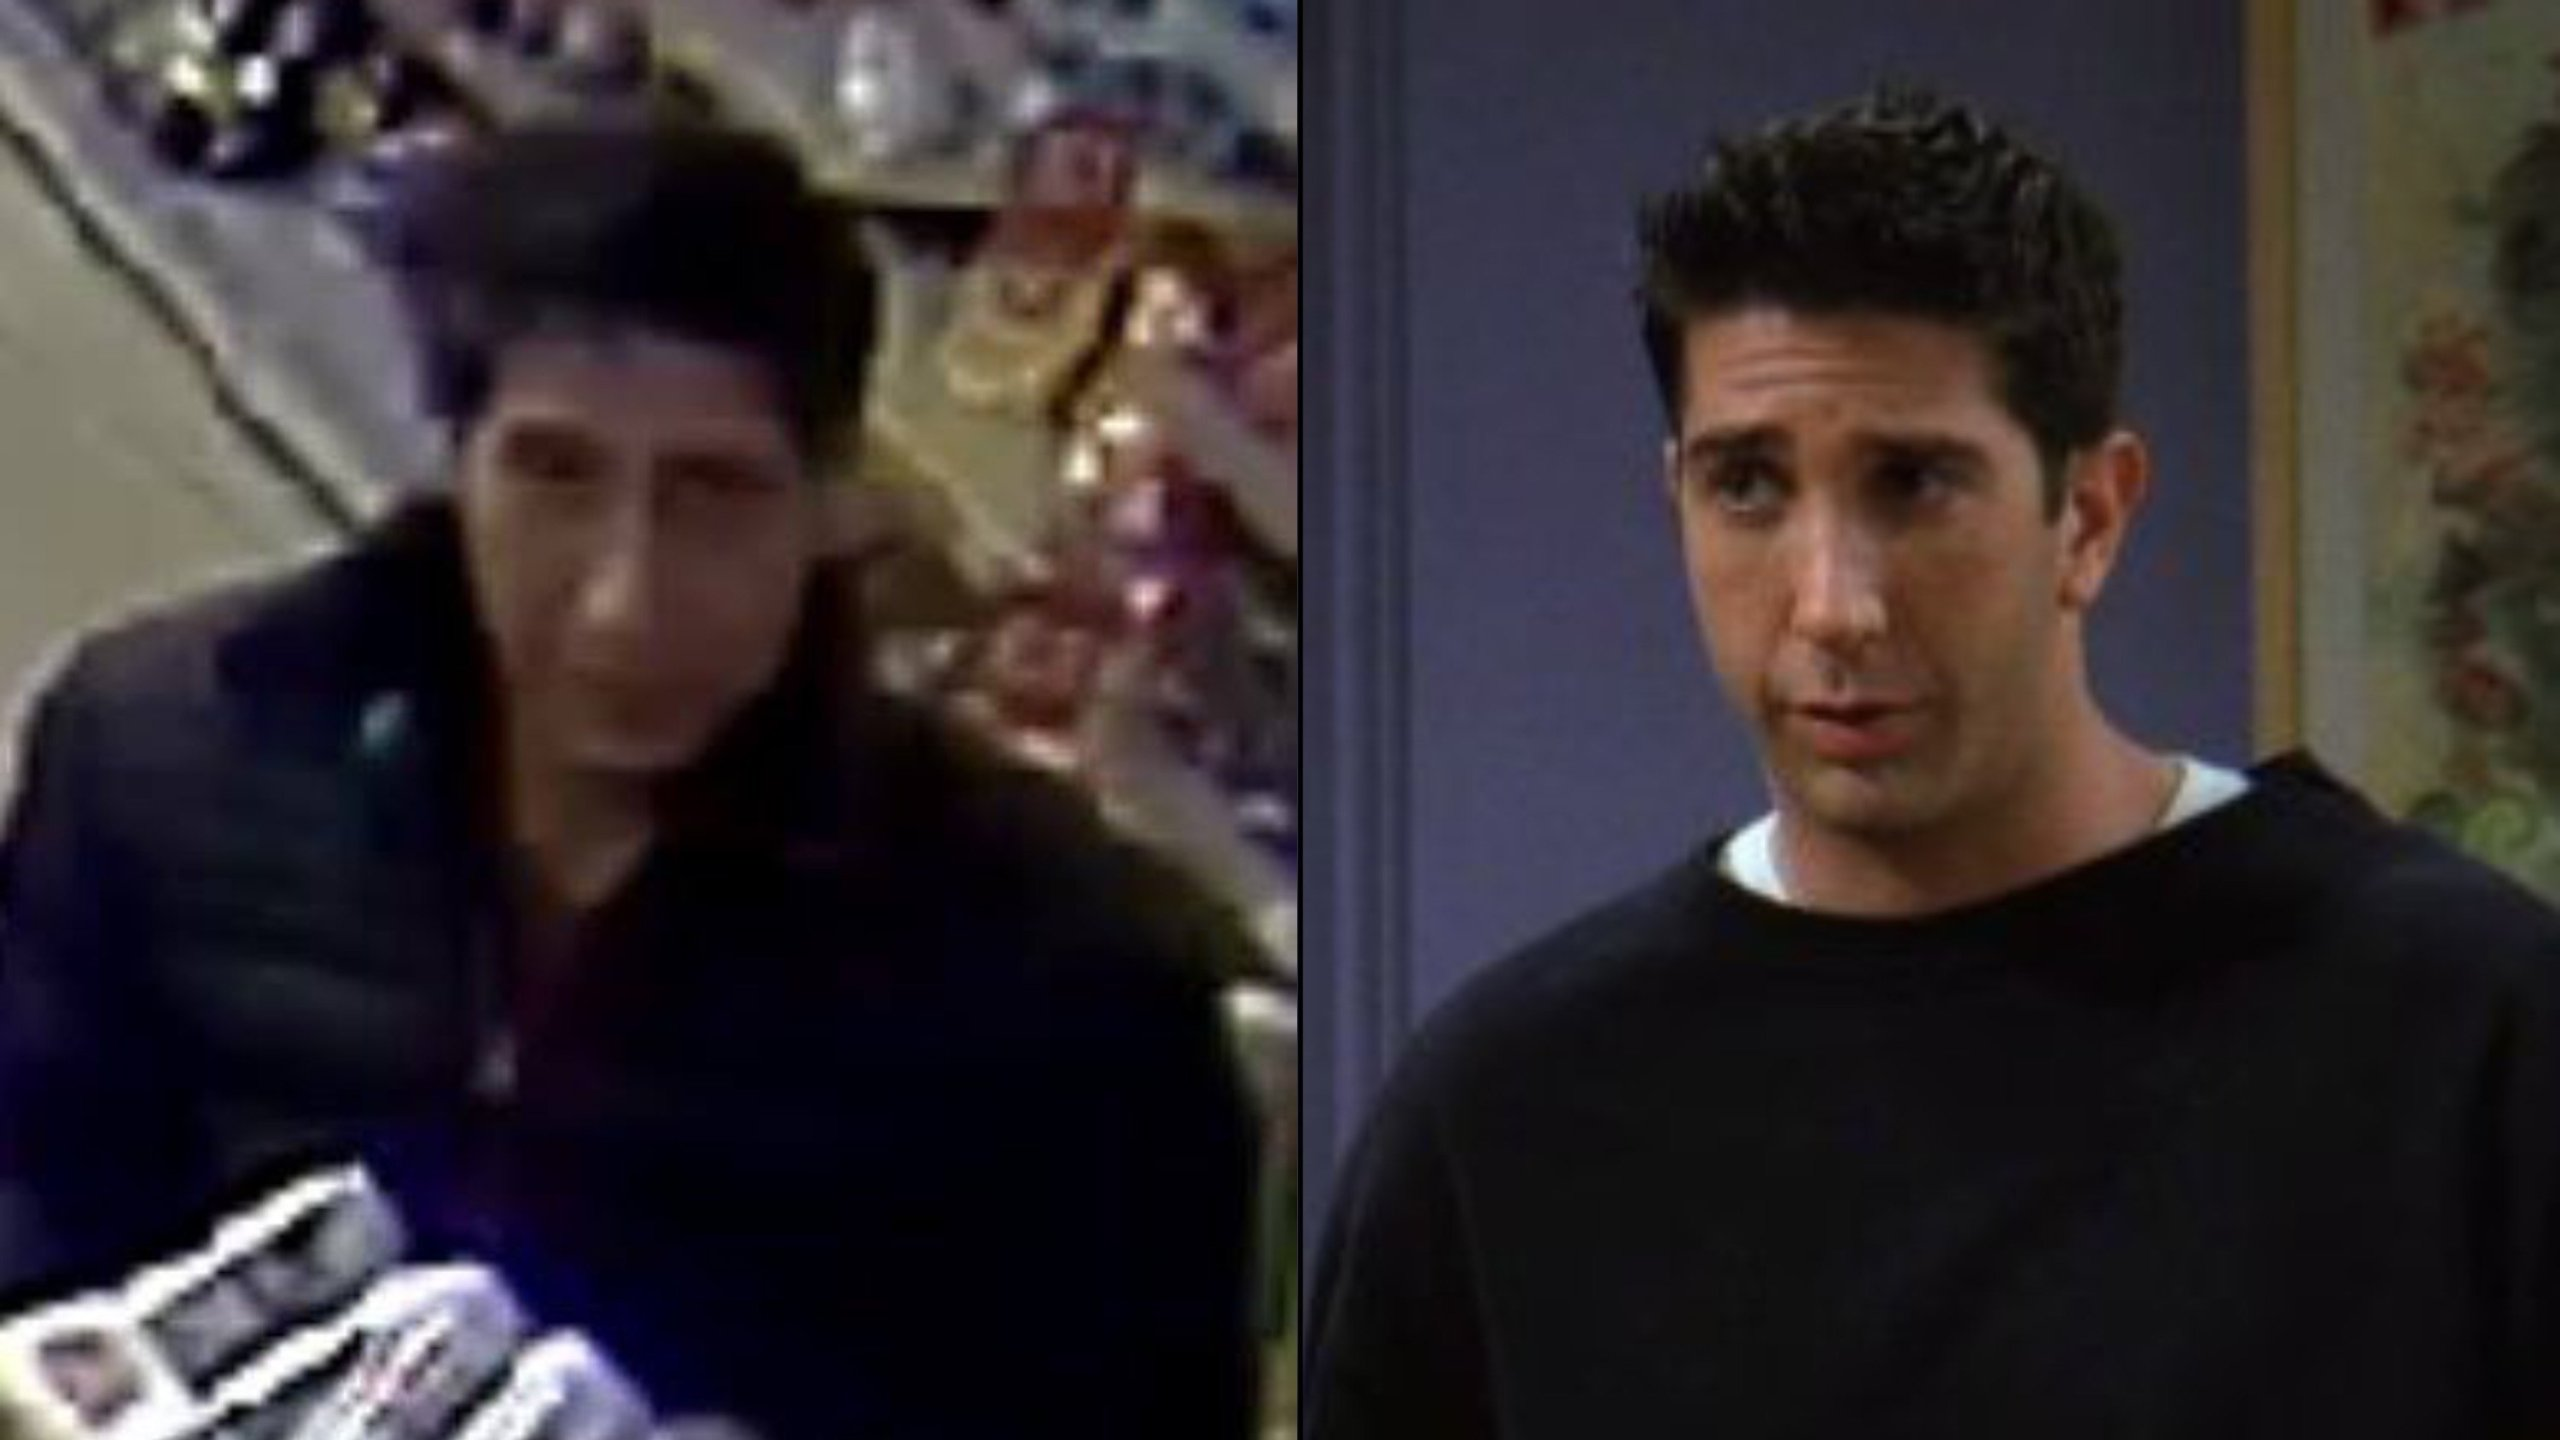 """At left, a robbery suspect is seen in a still from surveillance footage released Oct. 23, 2018, by Blackpool Police. At right, actor David Schwimmer portrays Ross Gellar in long-running sitcom """"Friends"""" in an image obtained by CNN."""